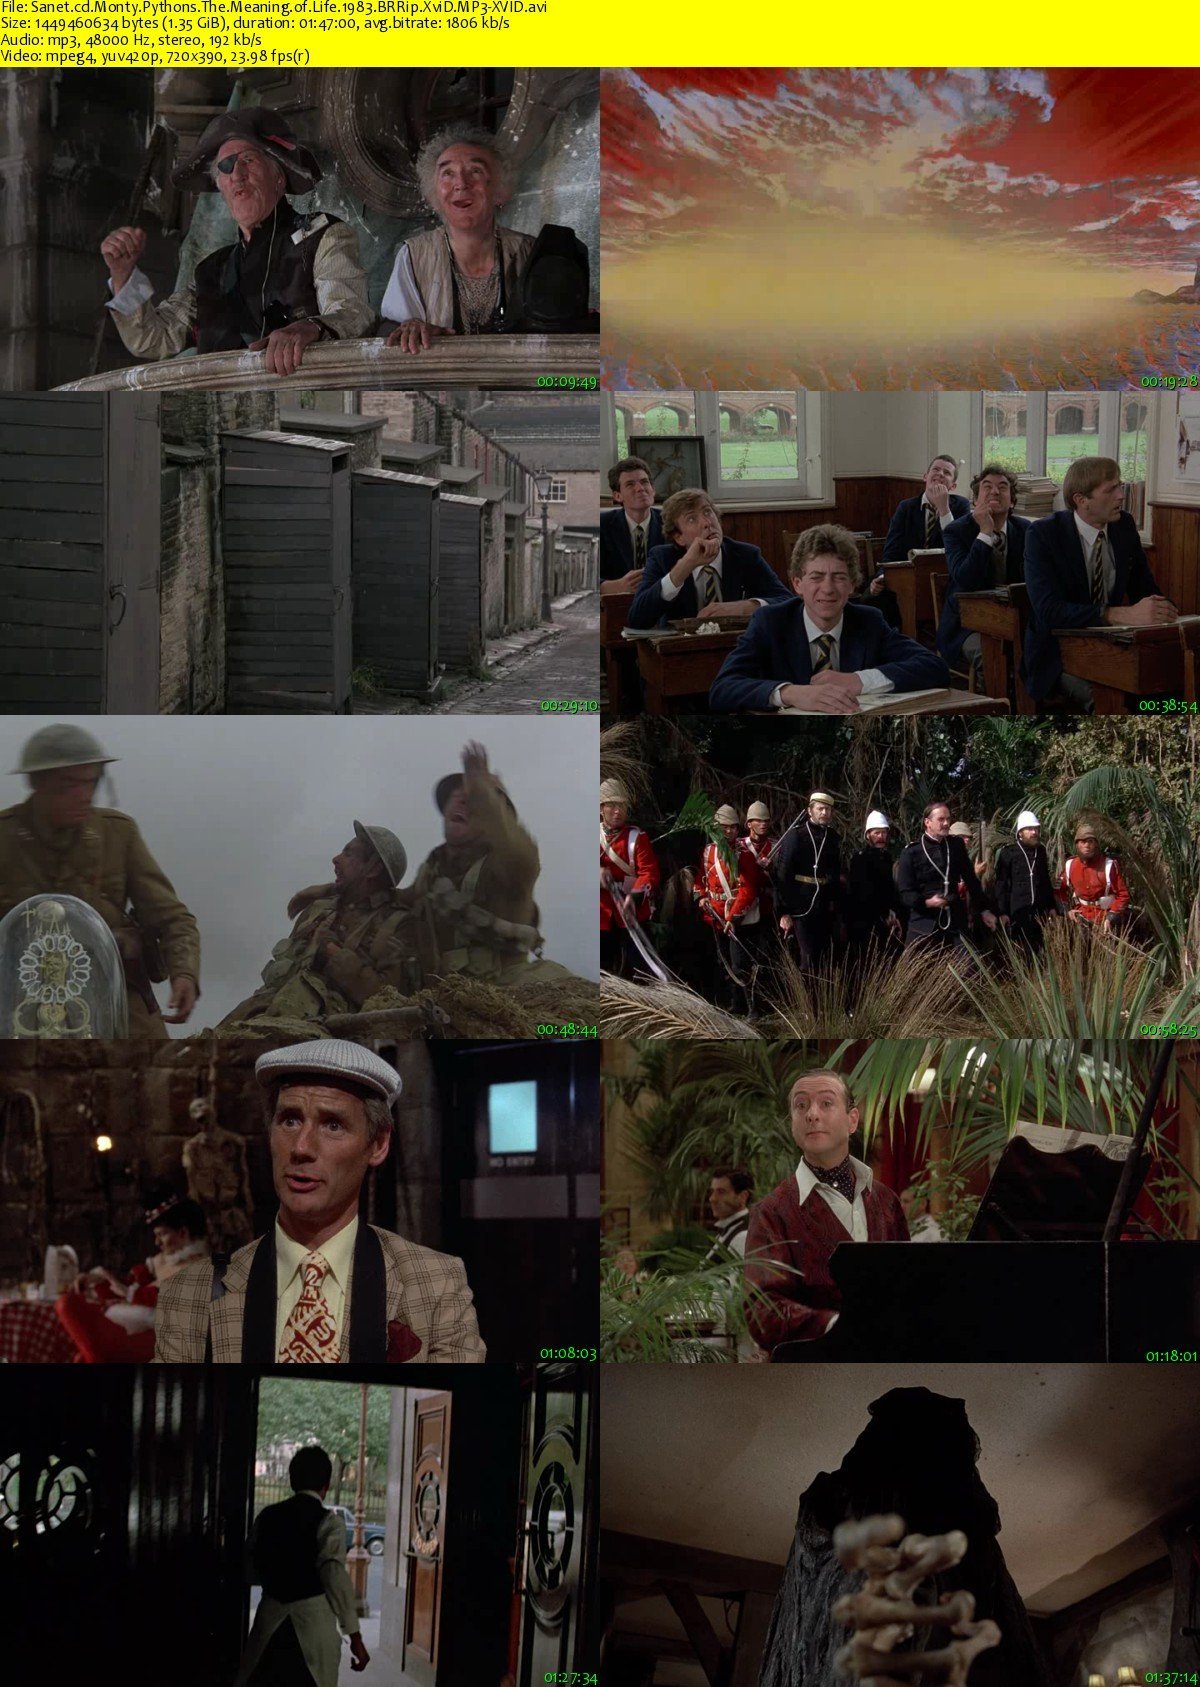 download monty pythons the meaning of life 1983 brrip xvid